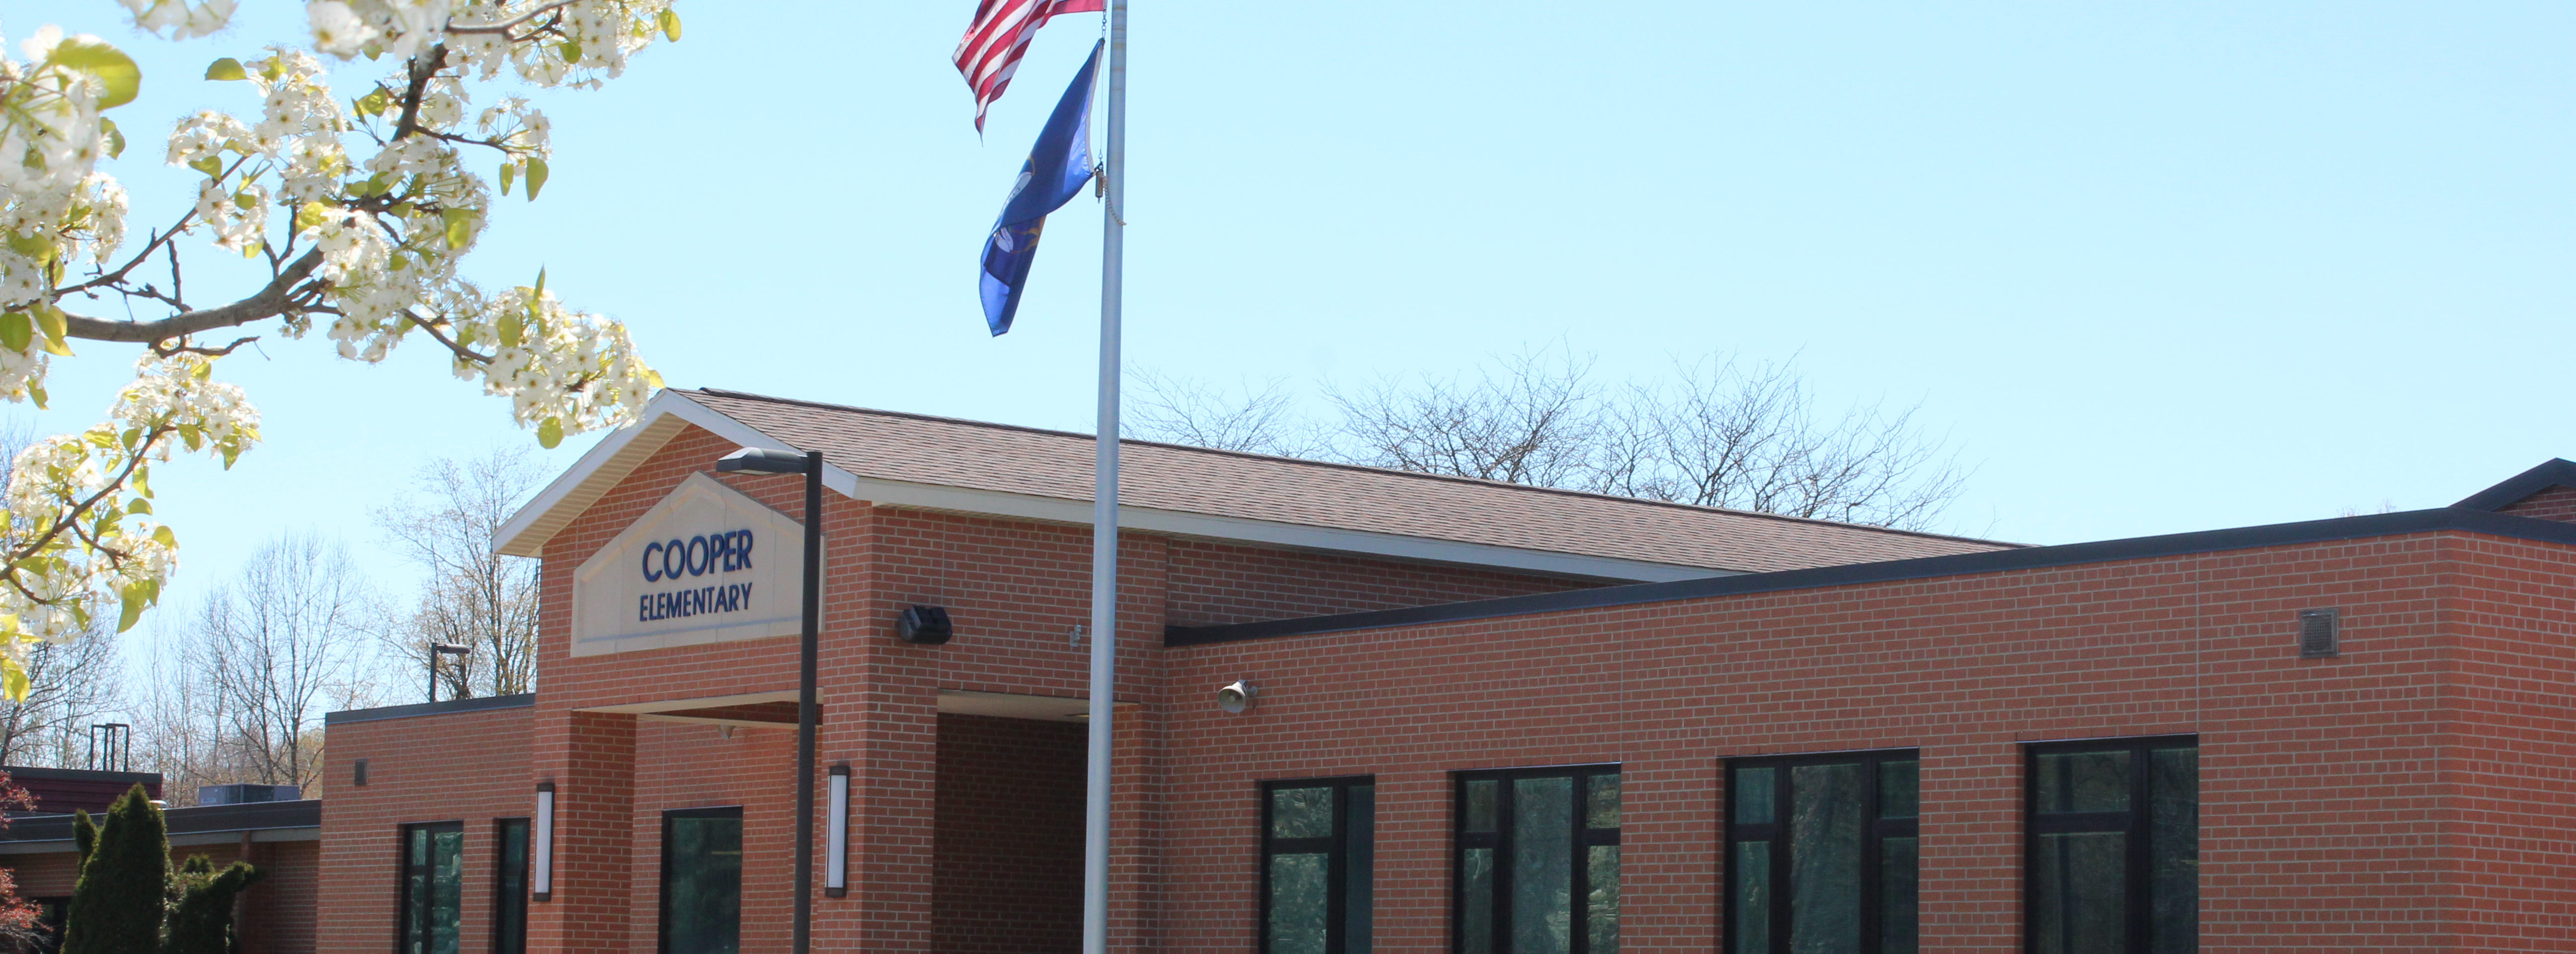 Exterior Picture of Cooper Elementary main entrance